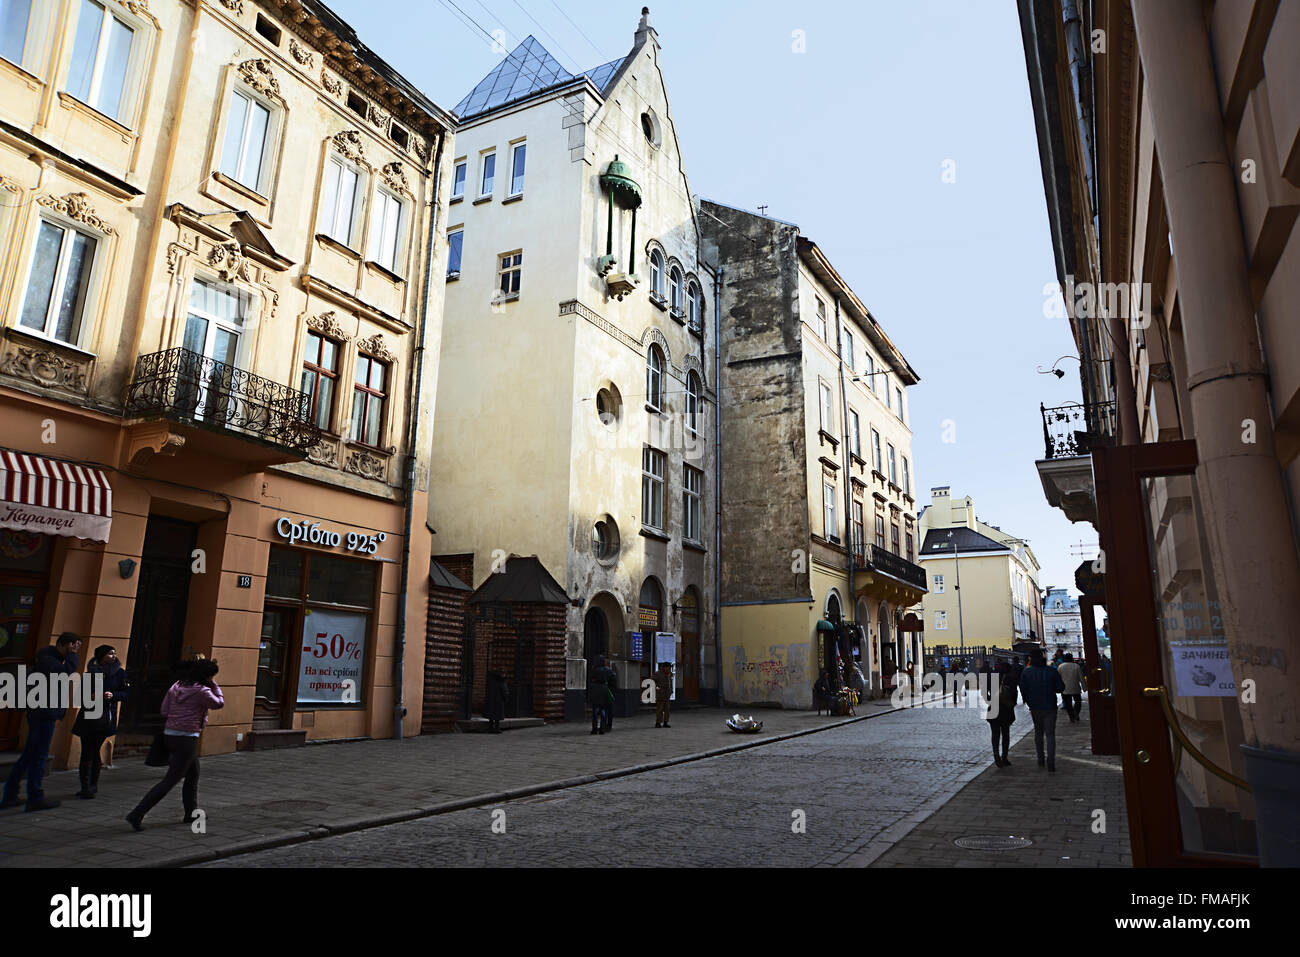 Lviv, Ukraine - January 30, 2016: Lviv cityscape. View of old street with the townspeople and tourists - Stock Image